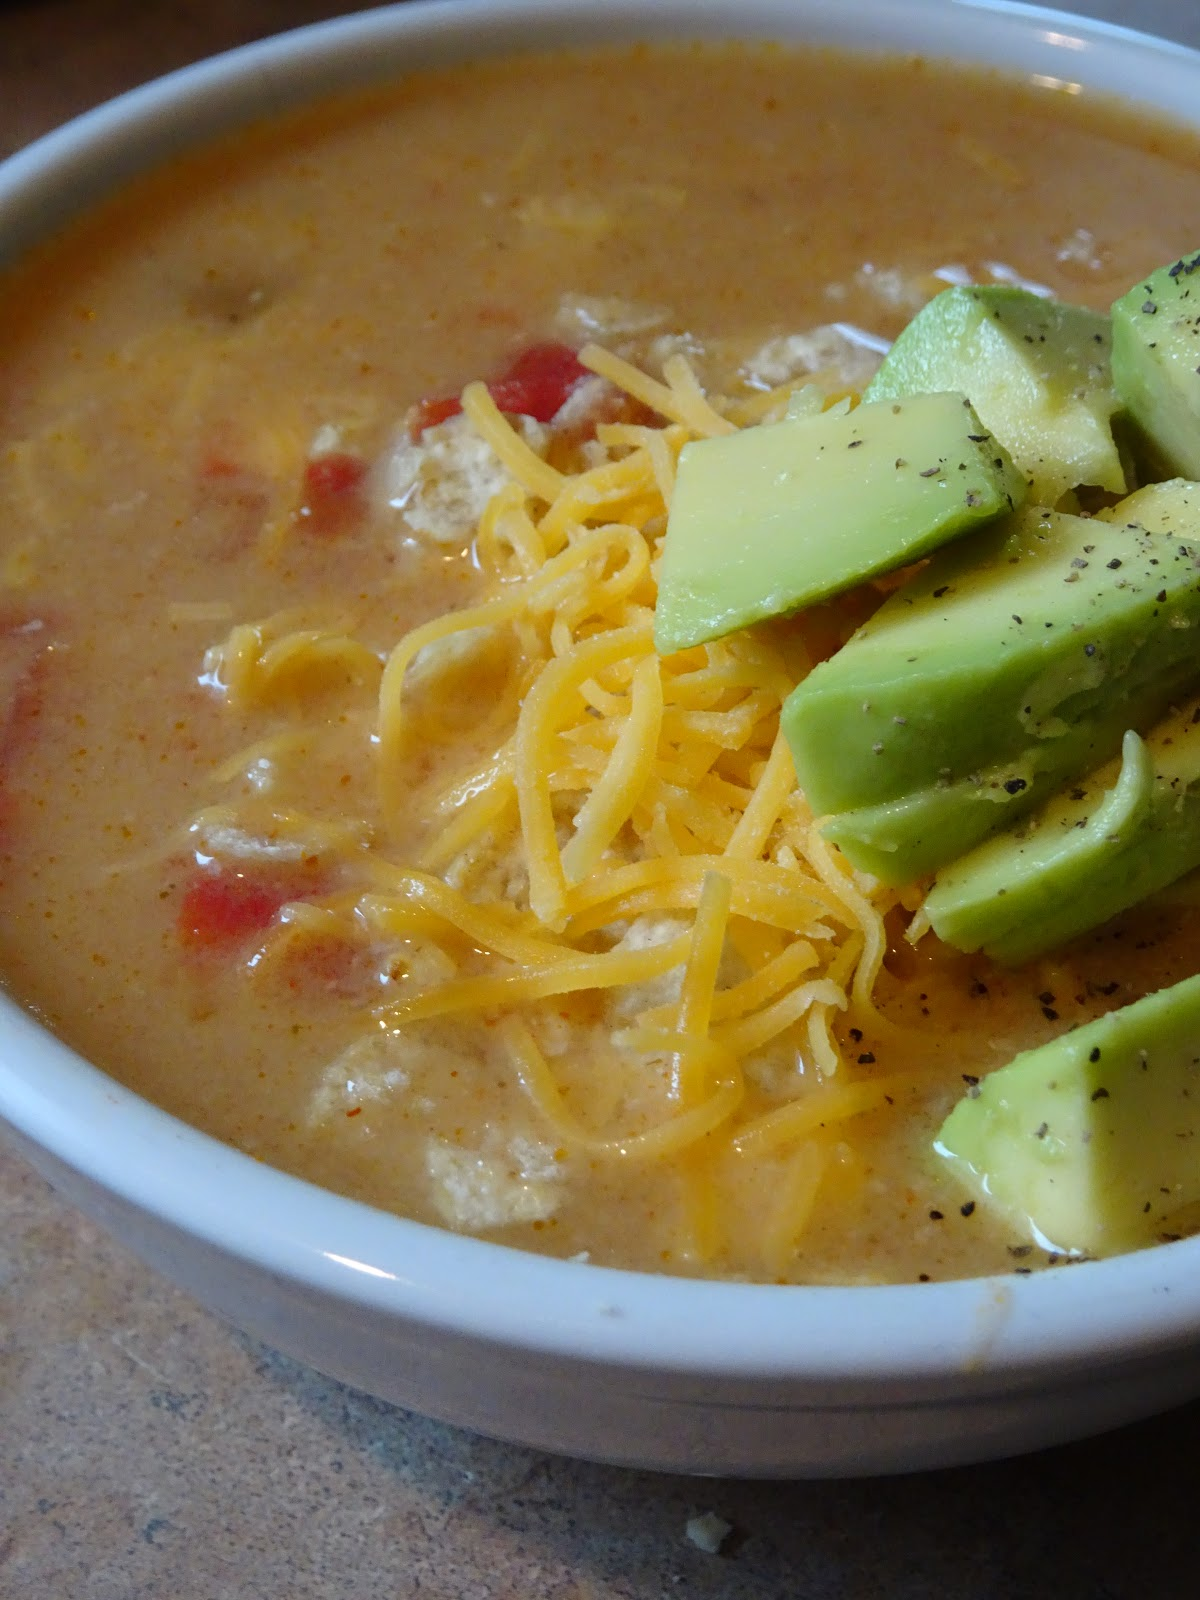 a bowl of warm soup with avocado